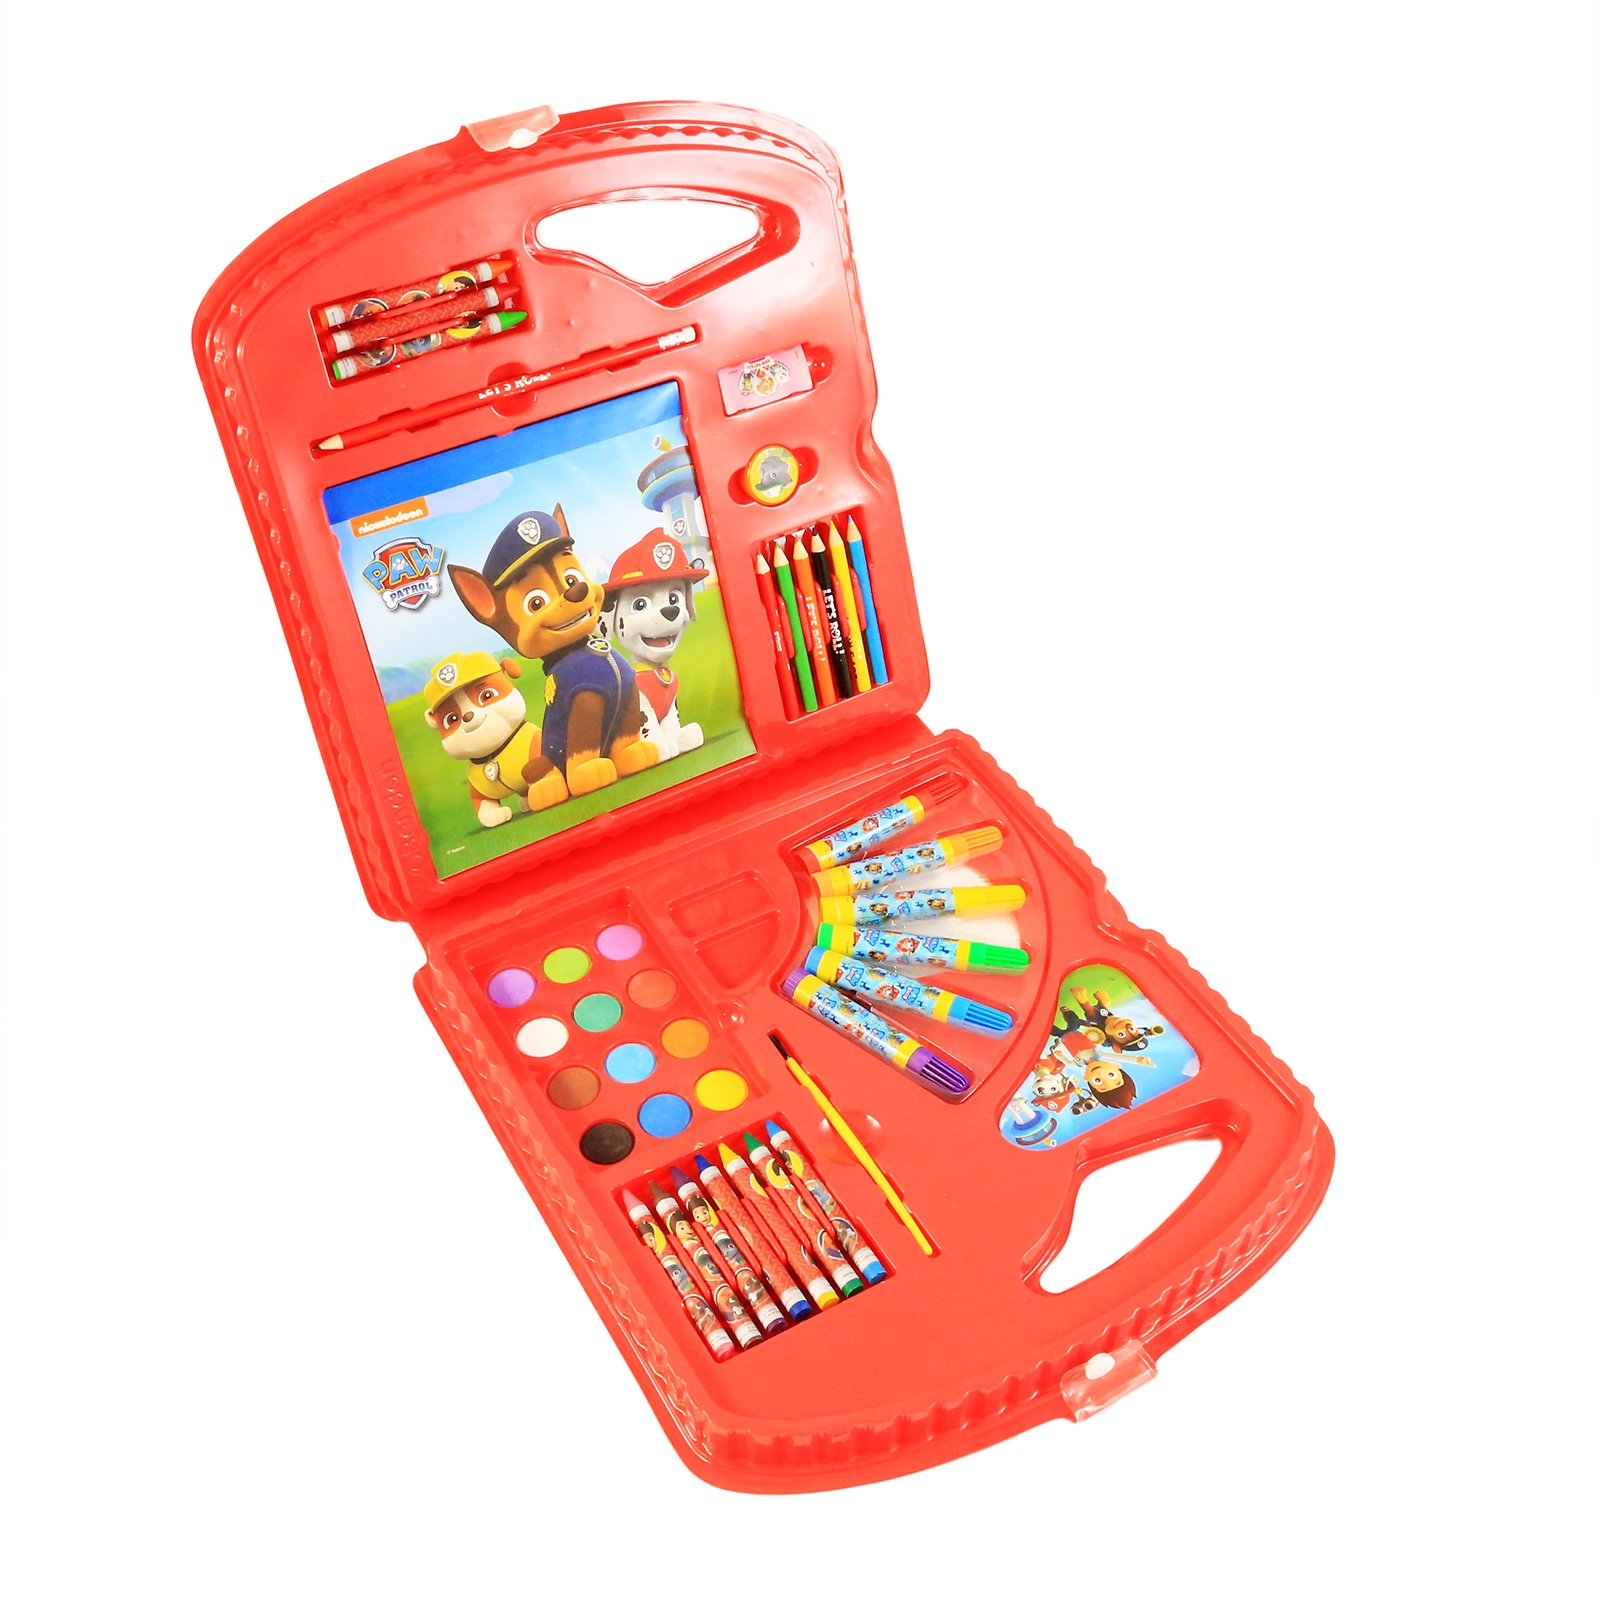 Paw Patrol Deluxe Kids Art Case 40pc Arts and Crafts Supplies Kit